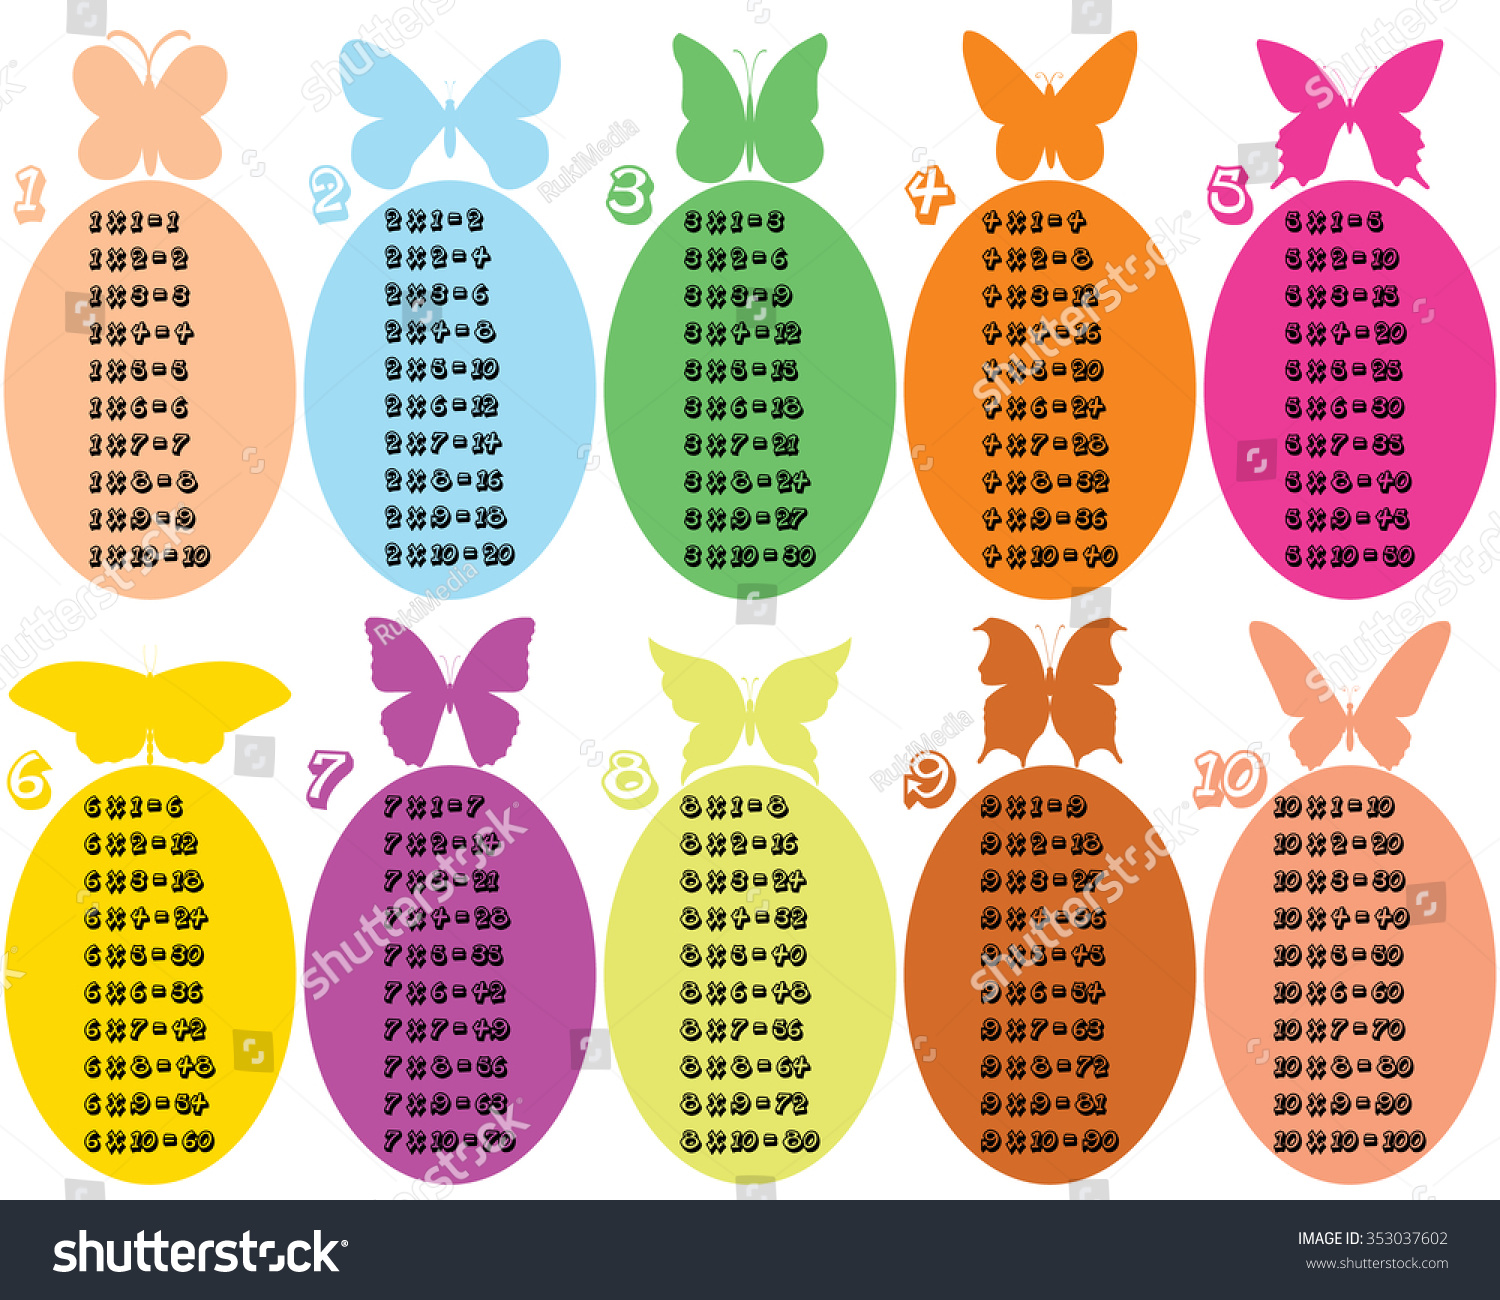 Colorful multiplication table between 1 10 stock vector for 1 to 10 table